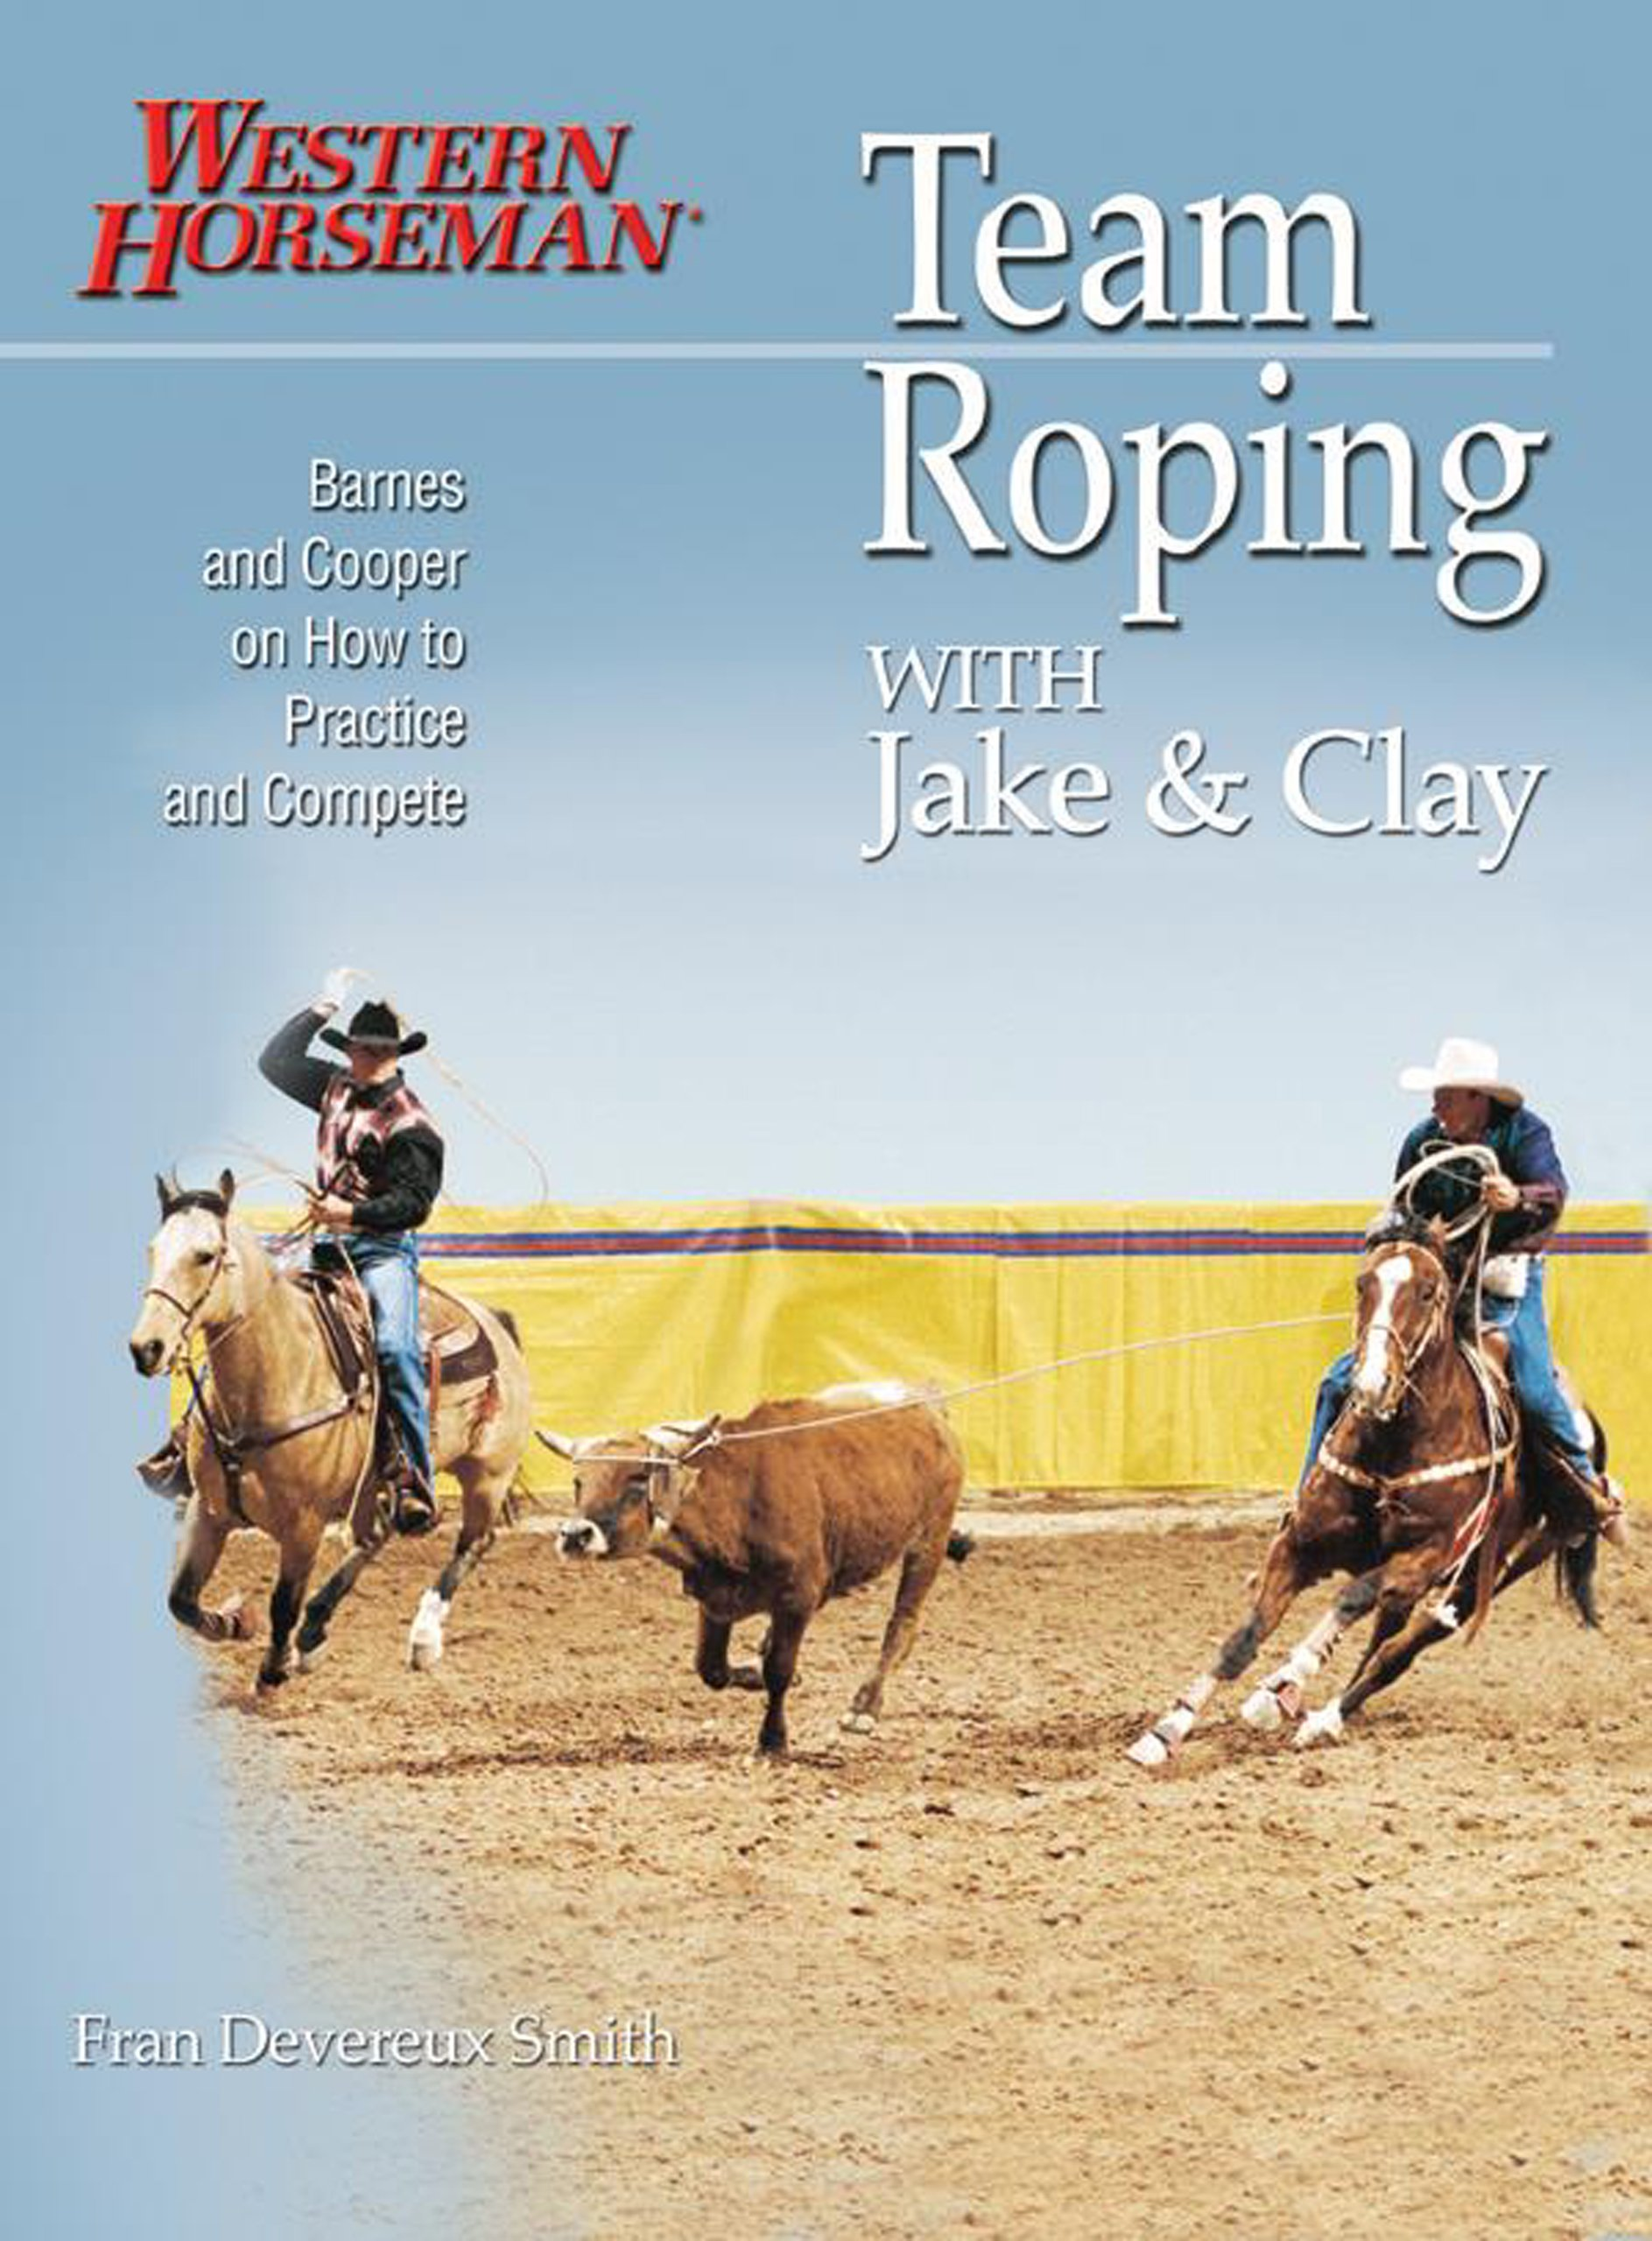 Team Roping With Jake and Clay: Barnes and Cooper on How to Practice and Compete (A Western Horseman Book) pdf epub